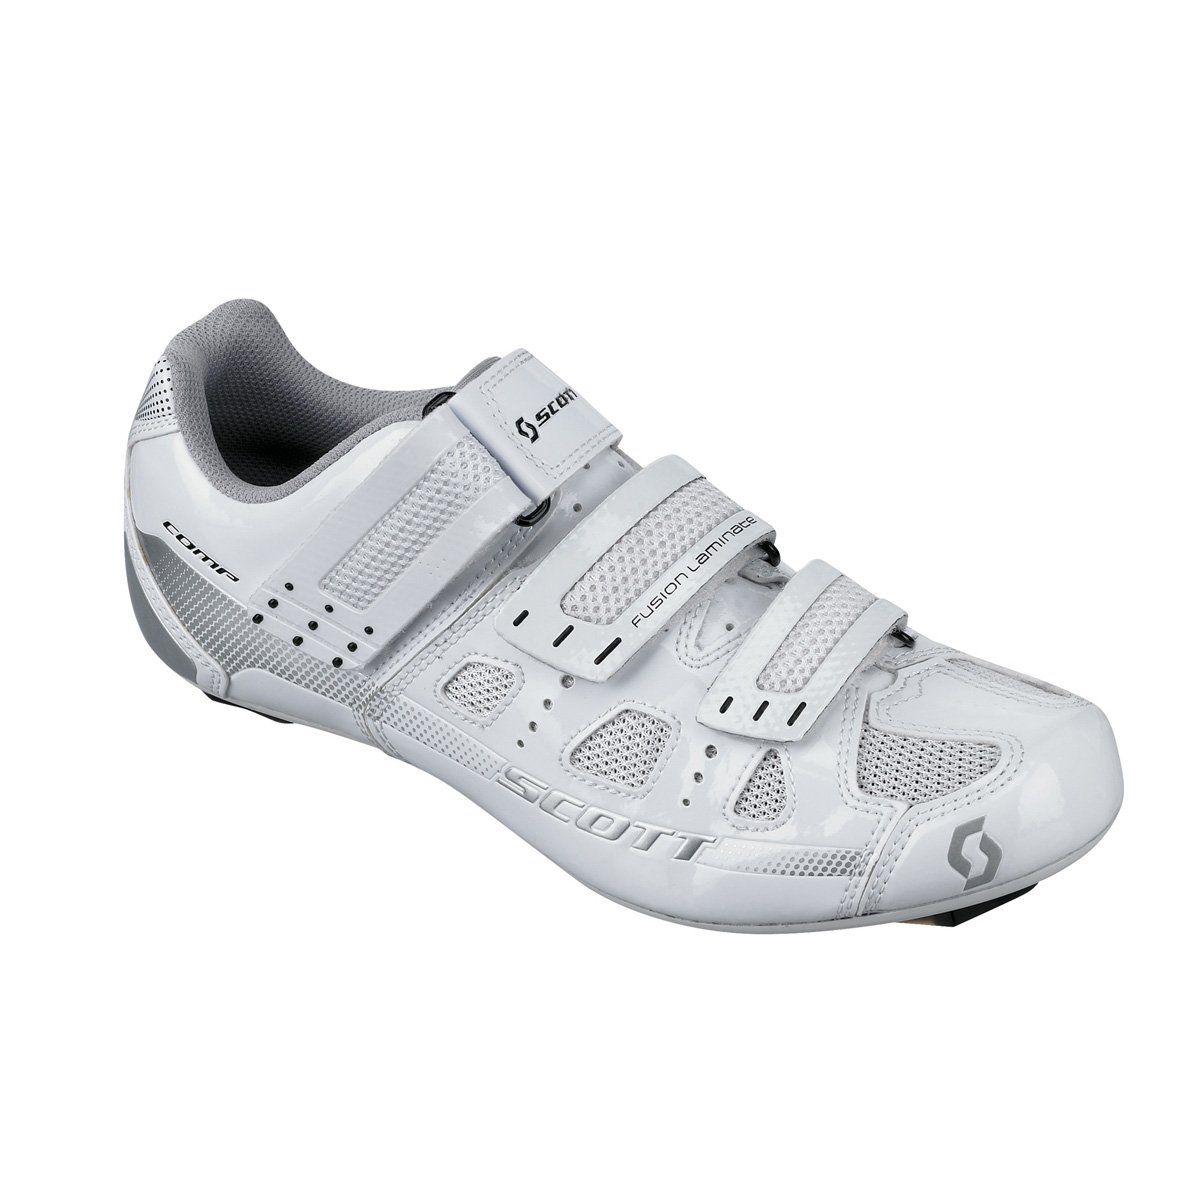 Scott Road Comp Lady Shoe Womens White Gloss 380 Introduction To 7400 Series Digital Logic Devices Fizix Sports Outdoors